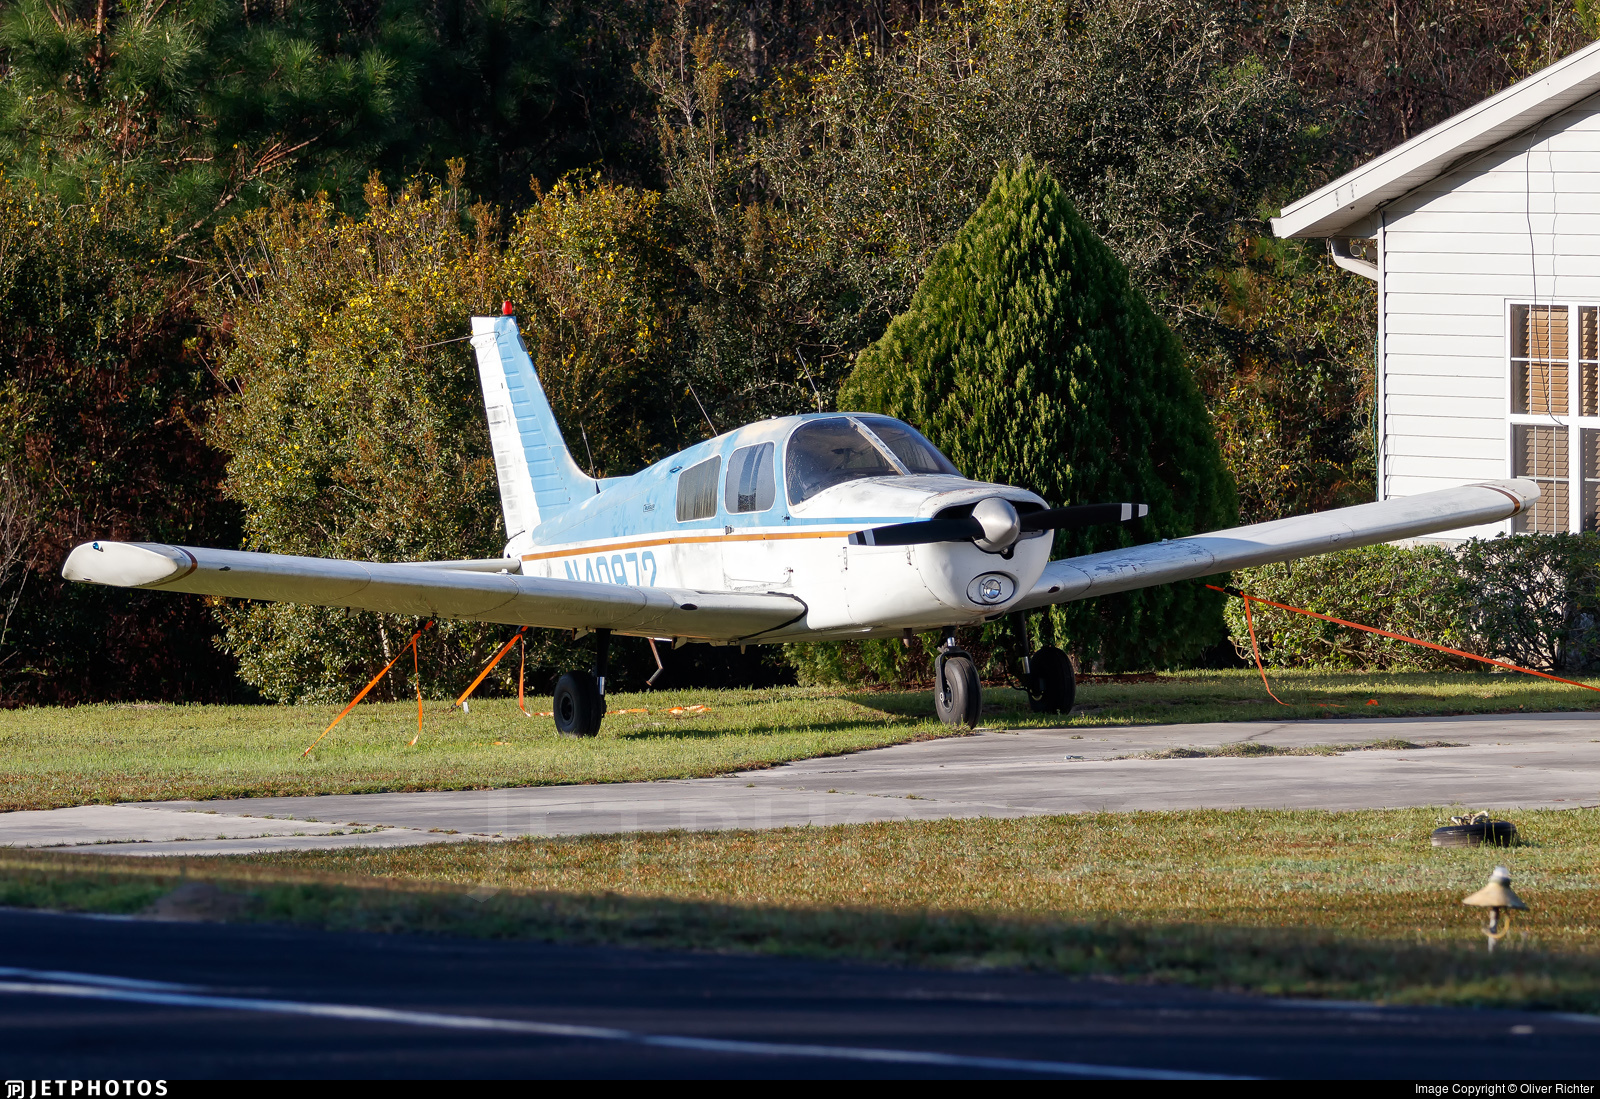 N40972 - Piper PA-28-140 Cherokee Cruiser - Private